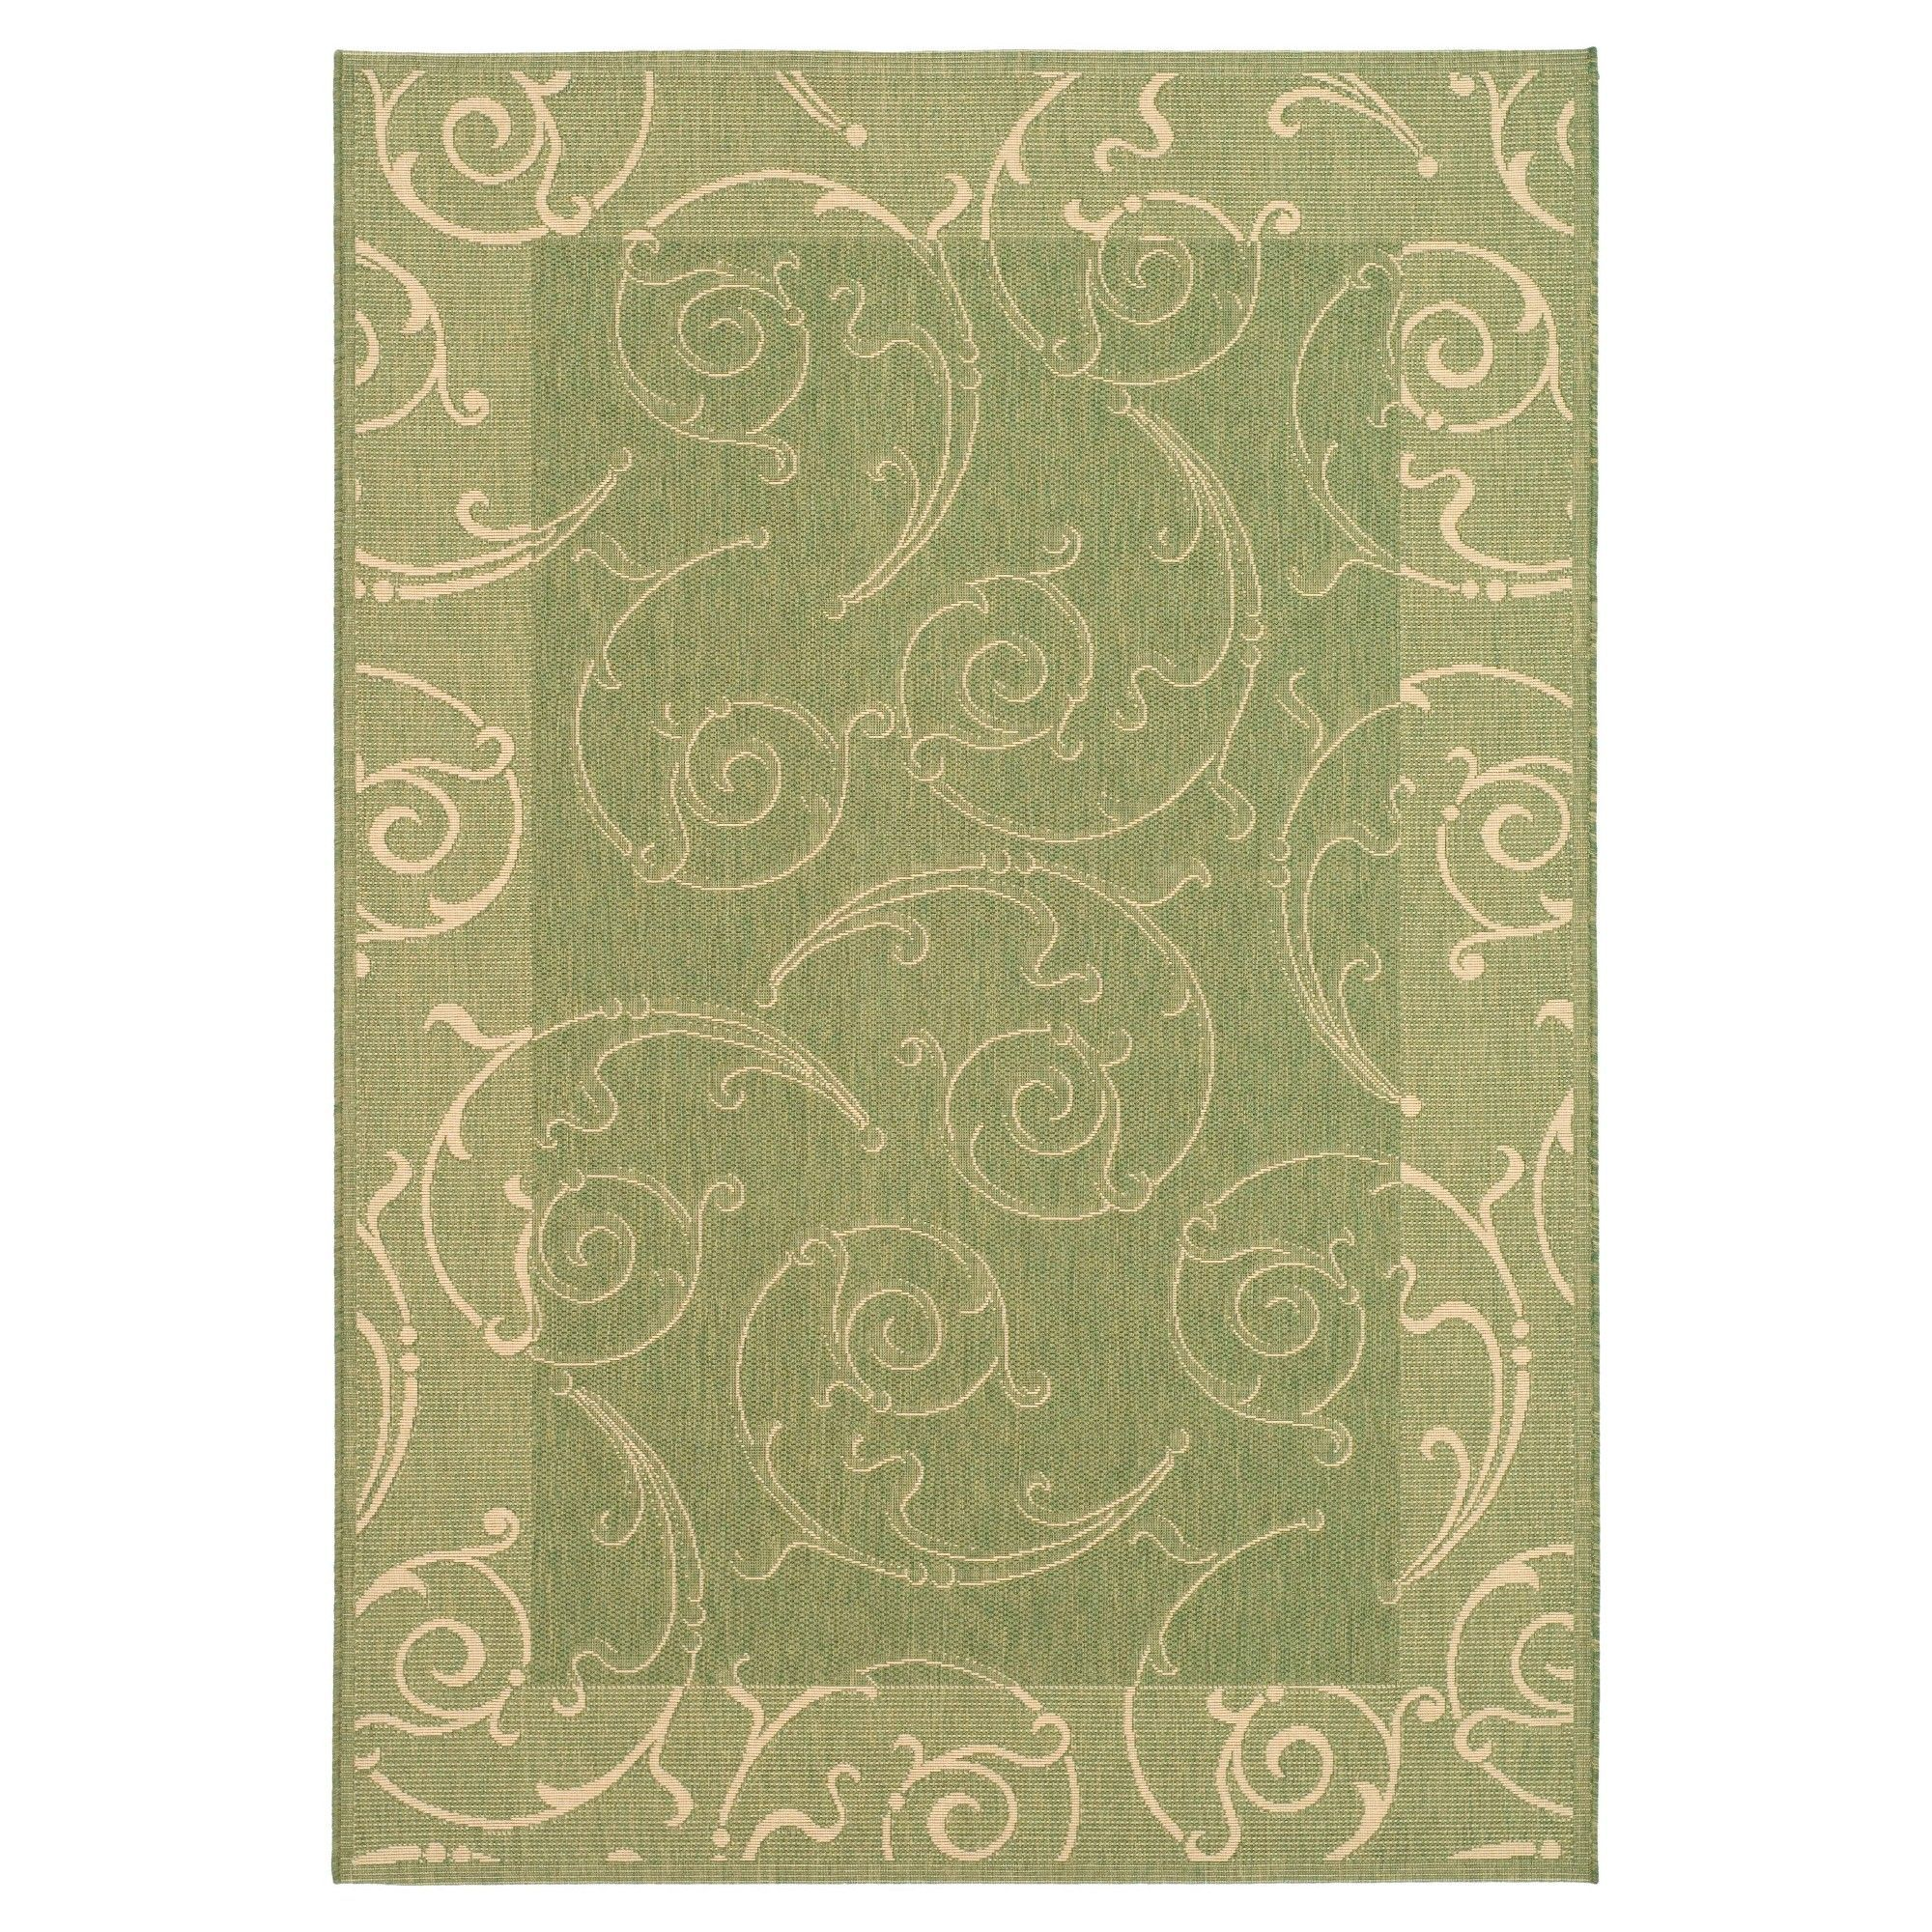 Pembrokeshire Rectangle 9 X 12 Outdoor Patio Rug Natural Olive Safavieh